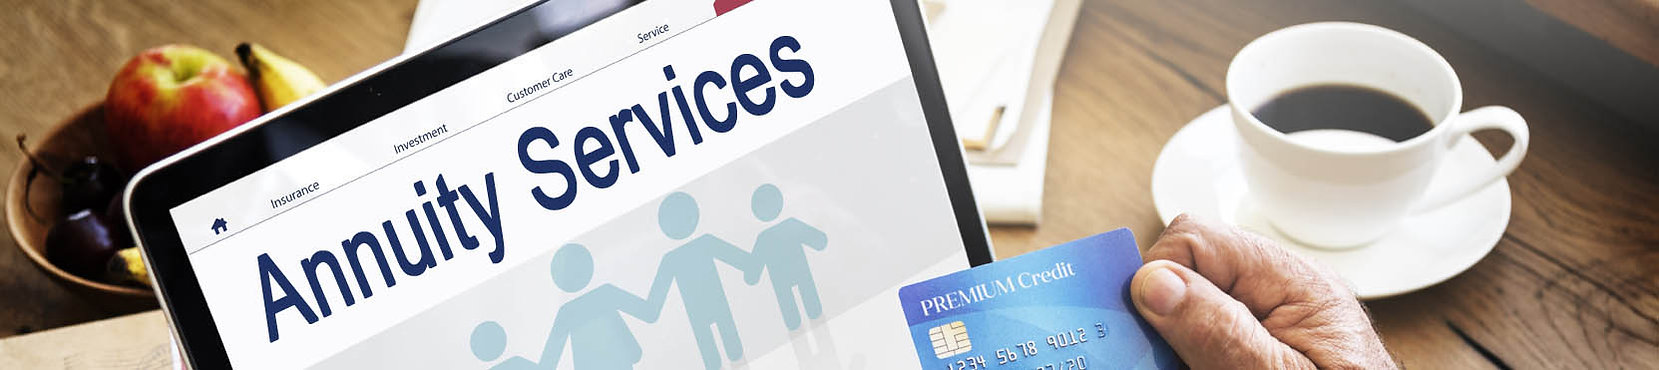 Annuity_services_banners.jpg